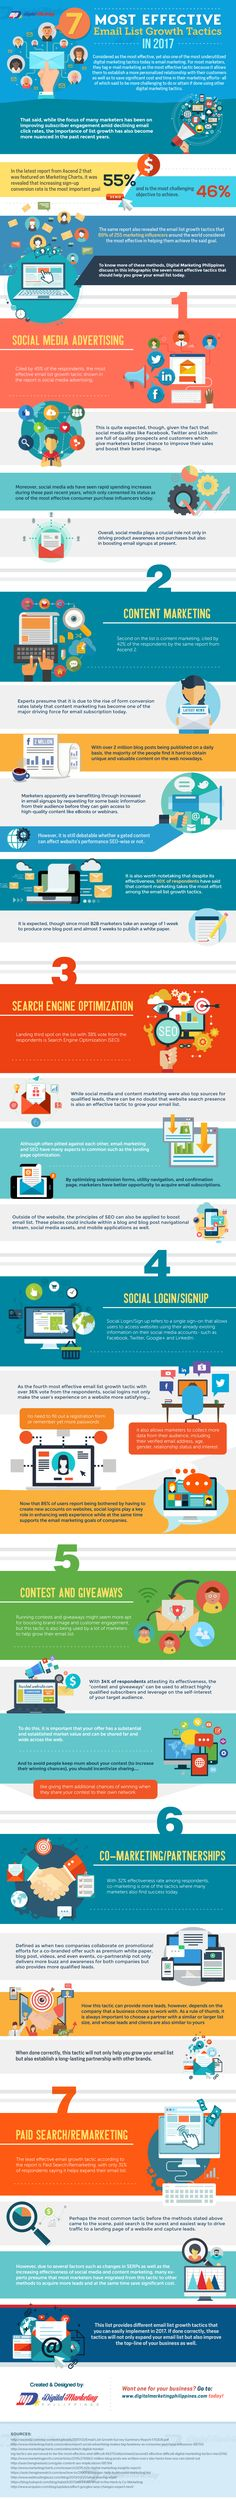 Digital marketing infographic & data visualisation Email Marketing Tips: 7 Effective Ways to Grow Your Email List in 2017 [Infographic] Infographic Description Tips: 7 Effective Ways to Grow Your Email List in 2017 Discovred by : Love To Work. Marketing Website, Email Marketing Strategy, Marketing Goals, Marketing Tactics, Business Marketing, Internet Marketing, Online Marketing, Social Media Marketing, Content Marketing